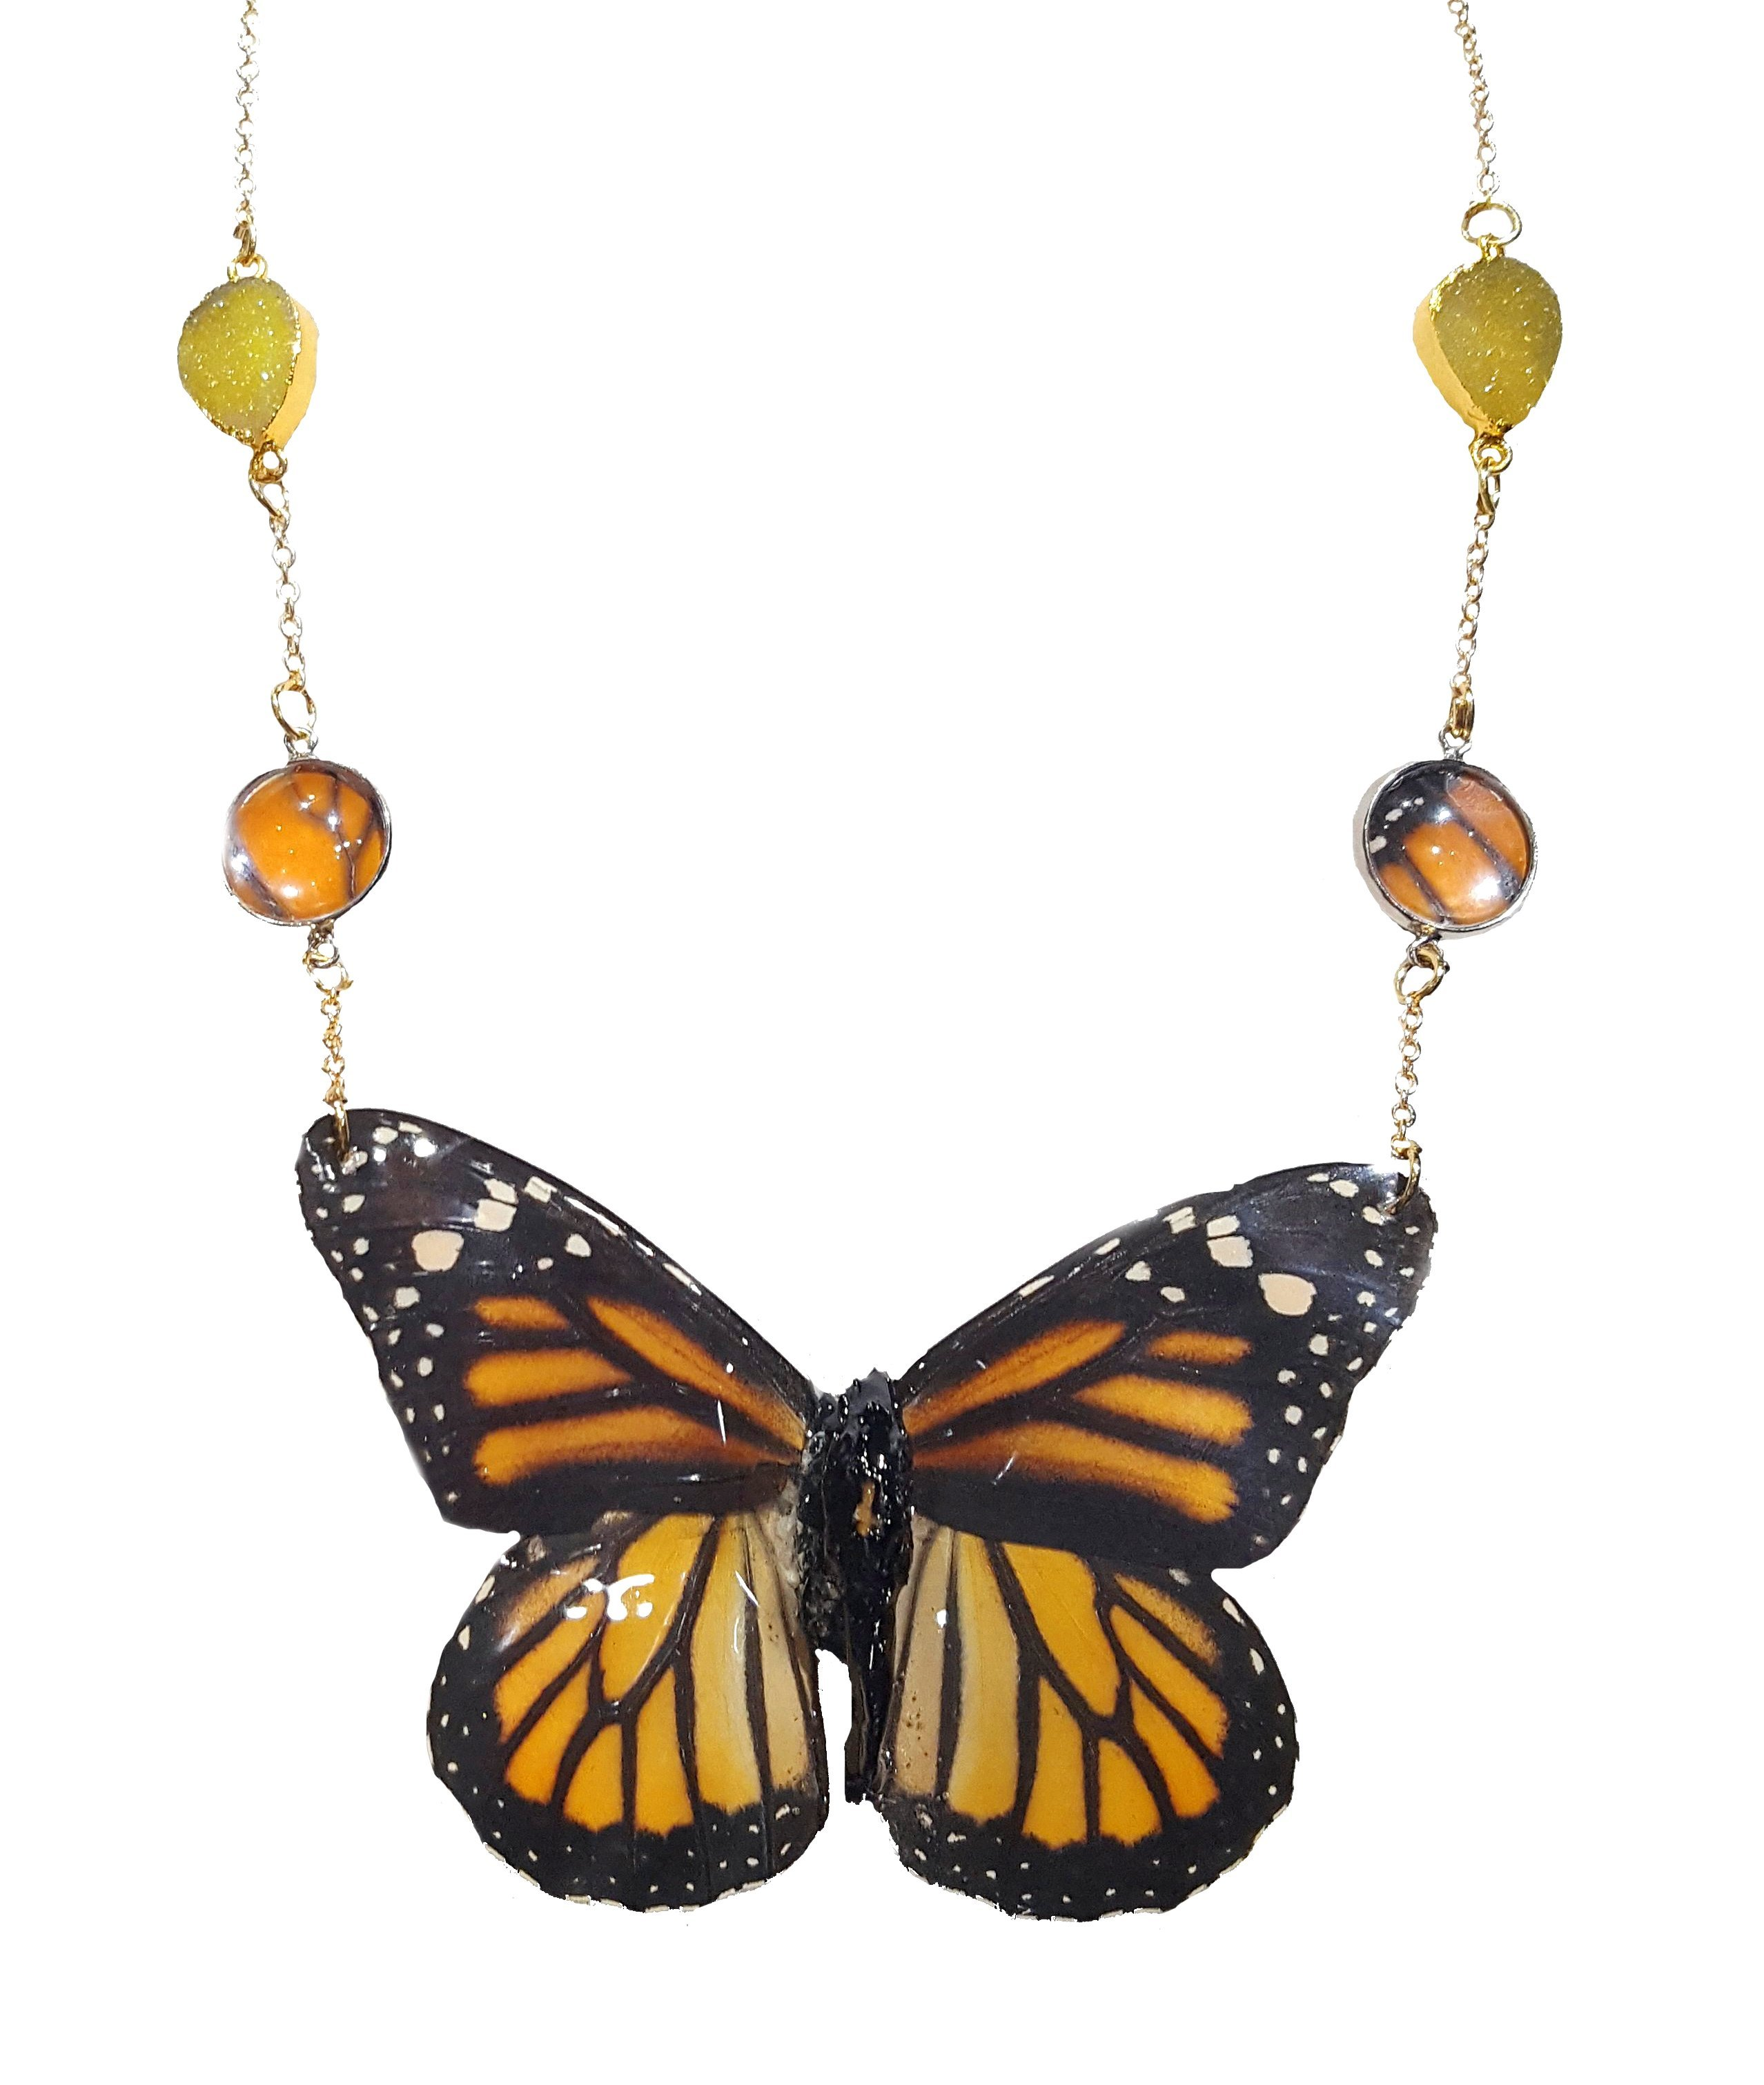 monarch butterfly necklace jpg.